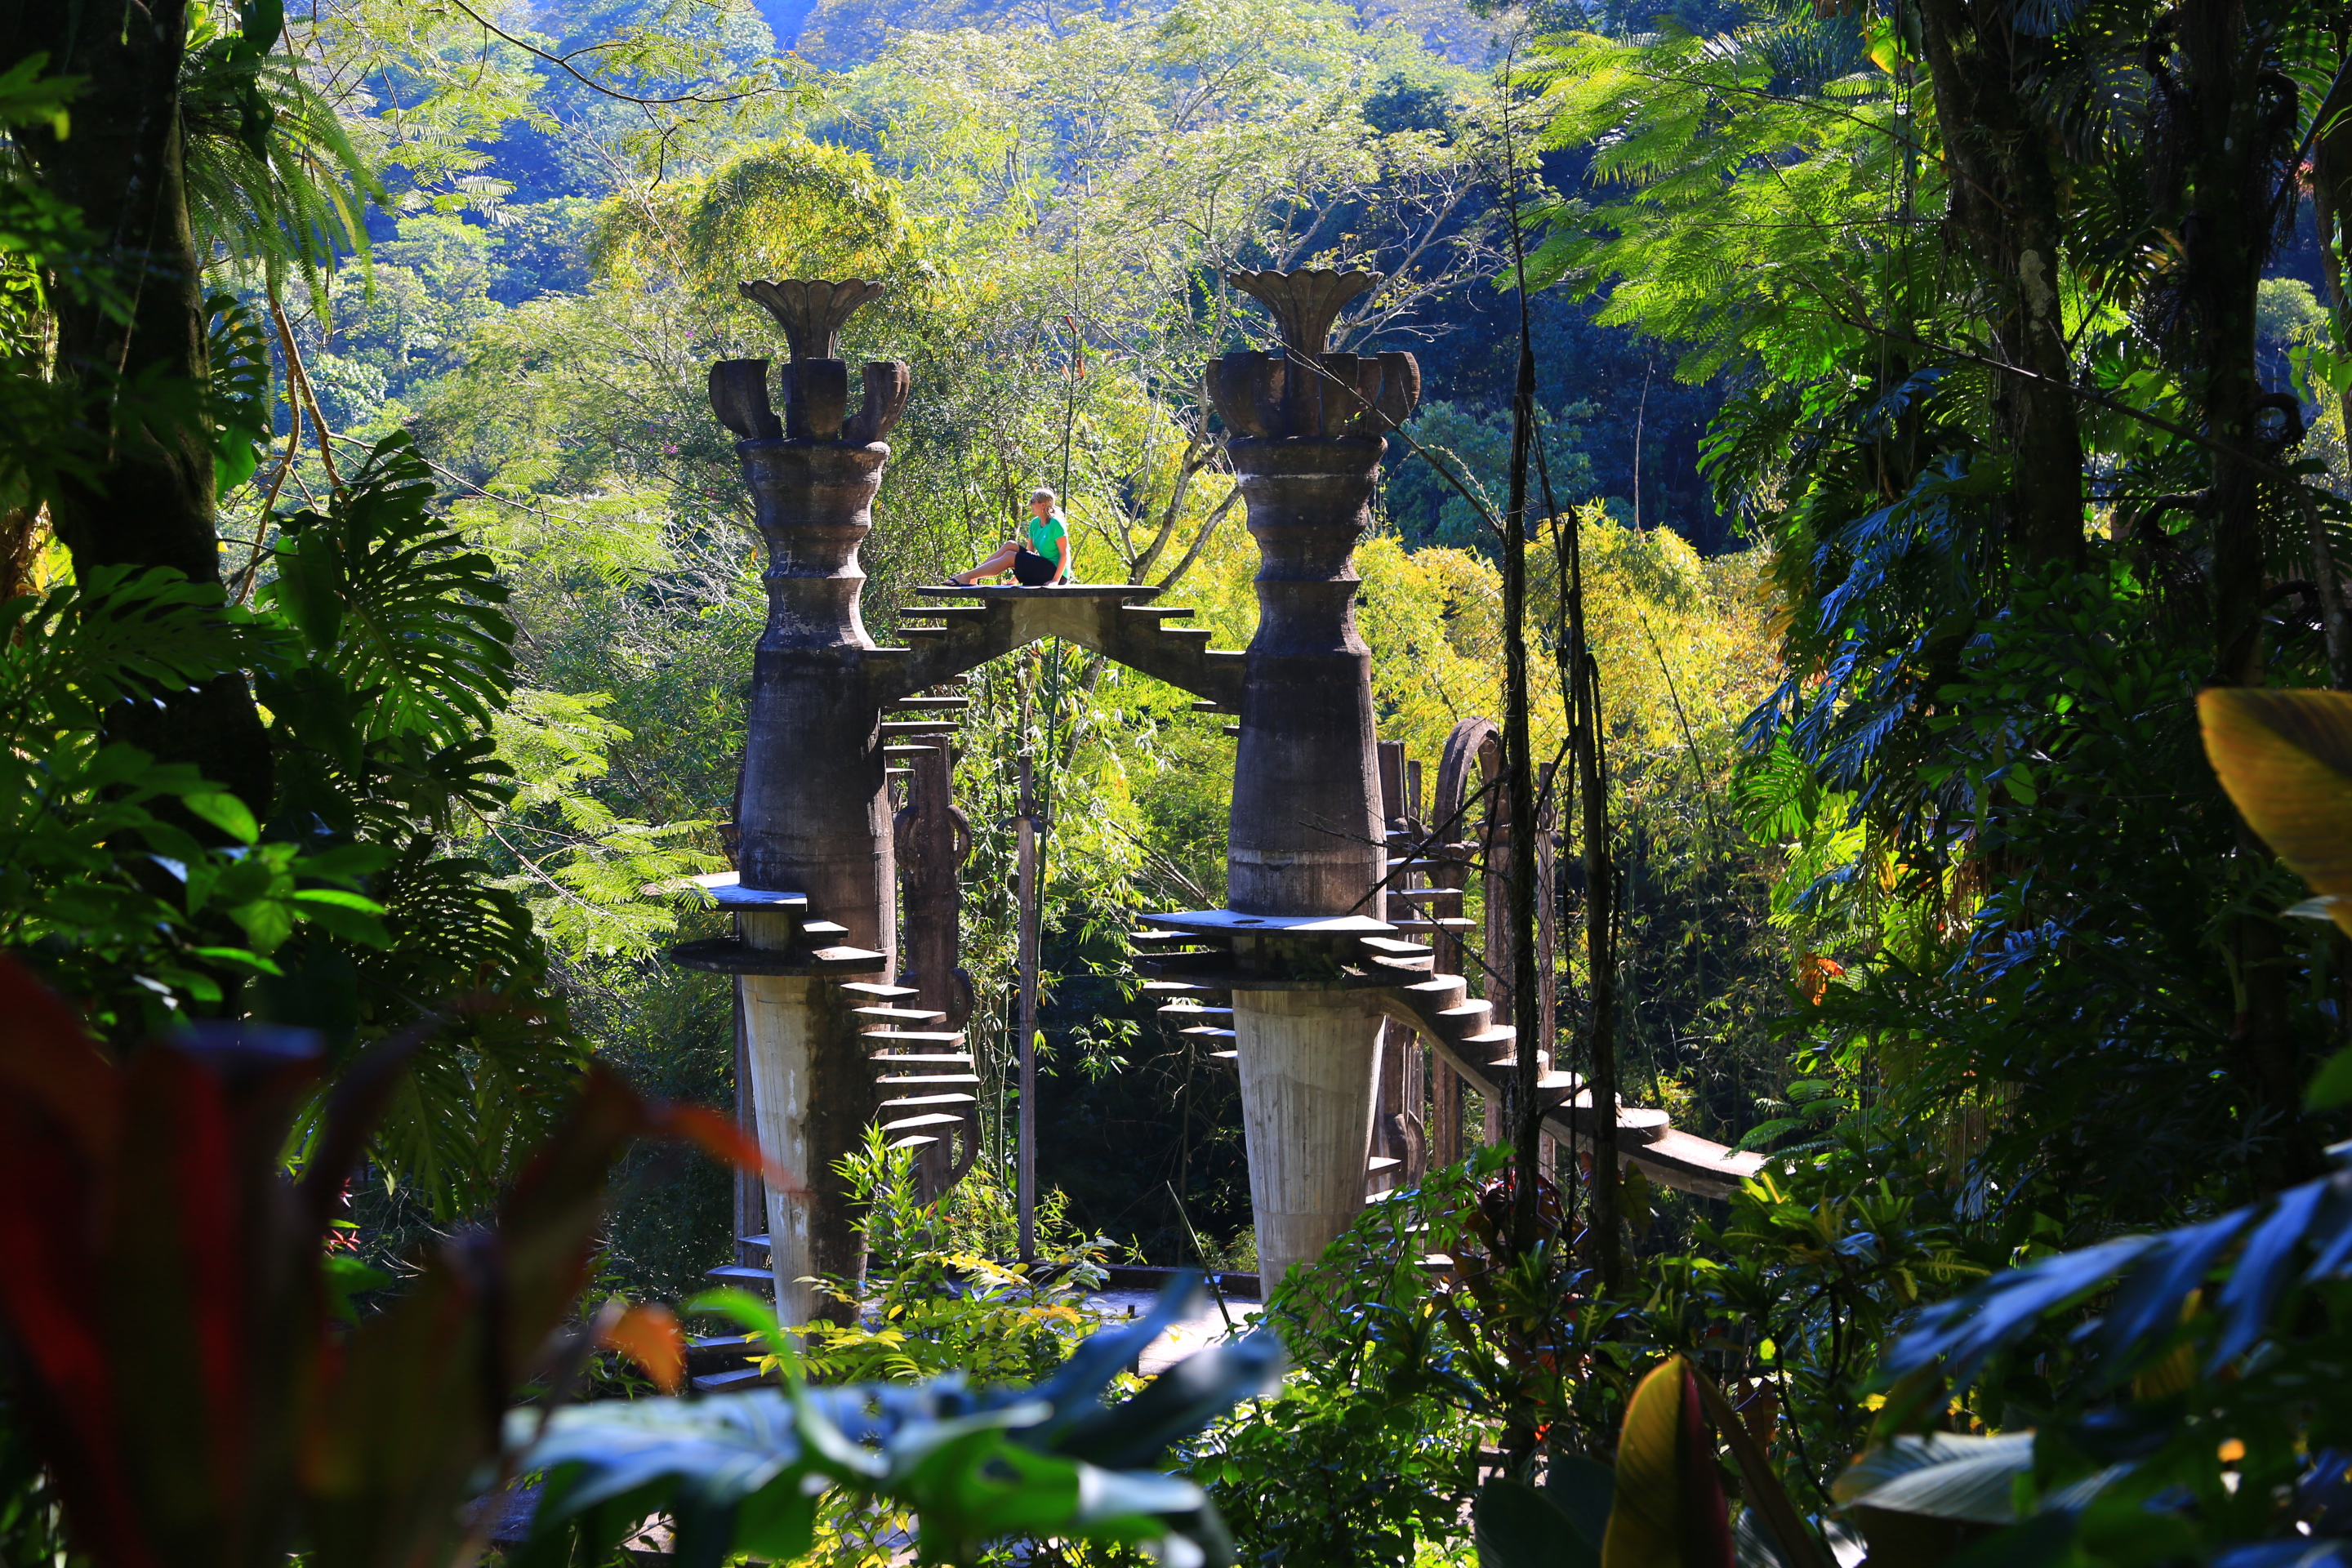 Xilitla The Surreal World Of Las Pozas Song Of The Road